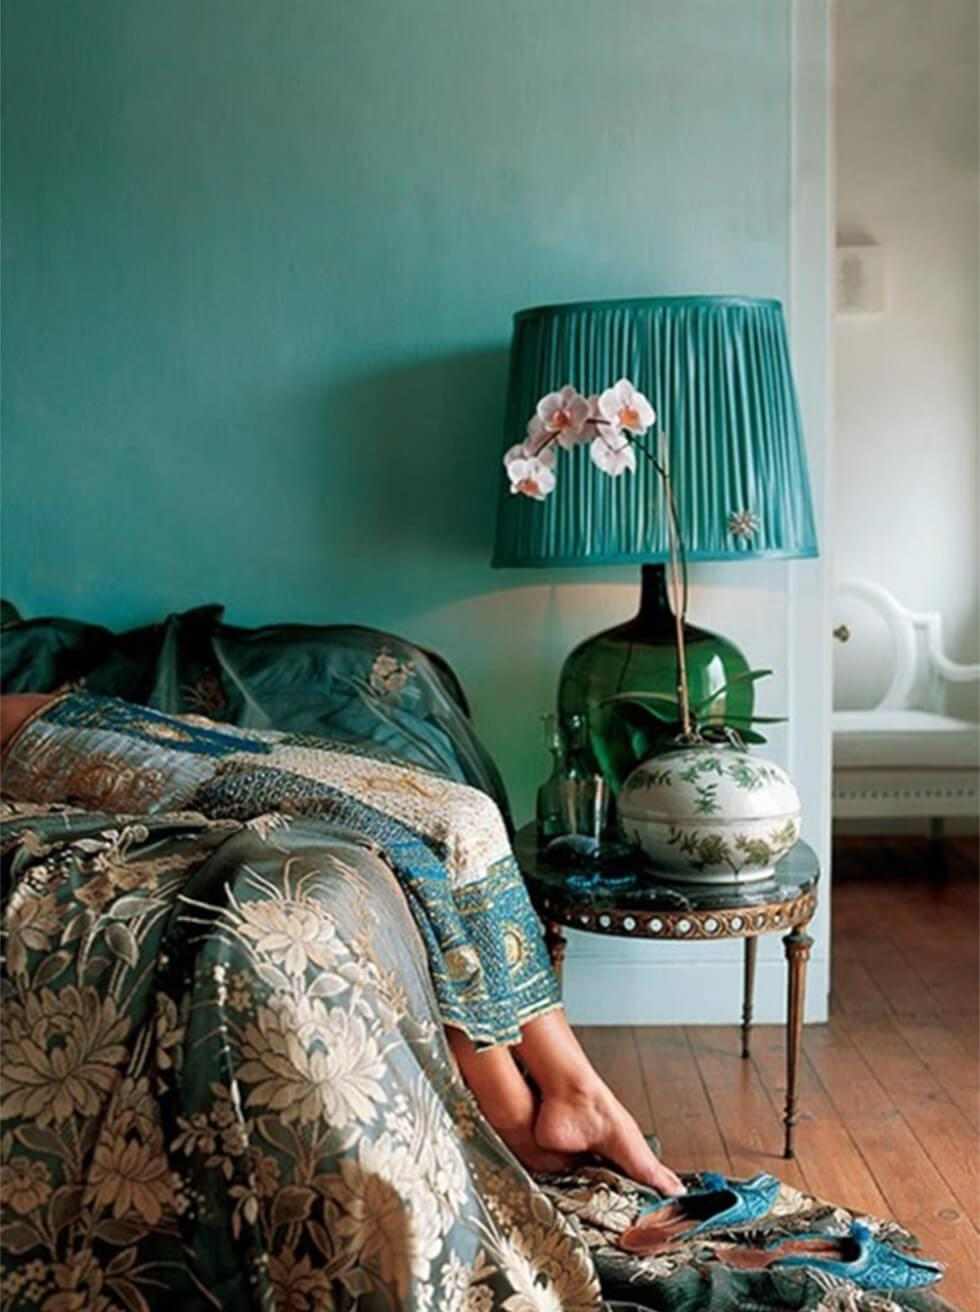 Bohemian bedroom with varying shades of teal on prints, bedding and accessories.